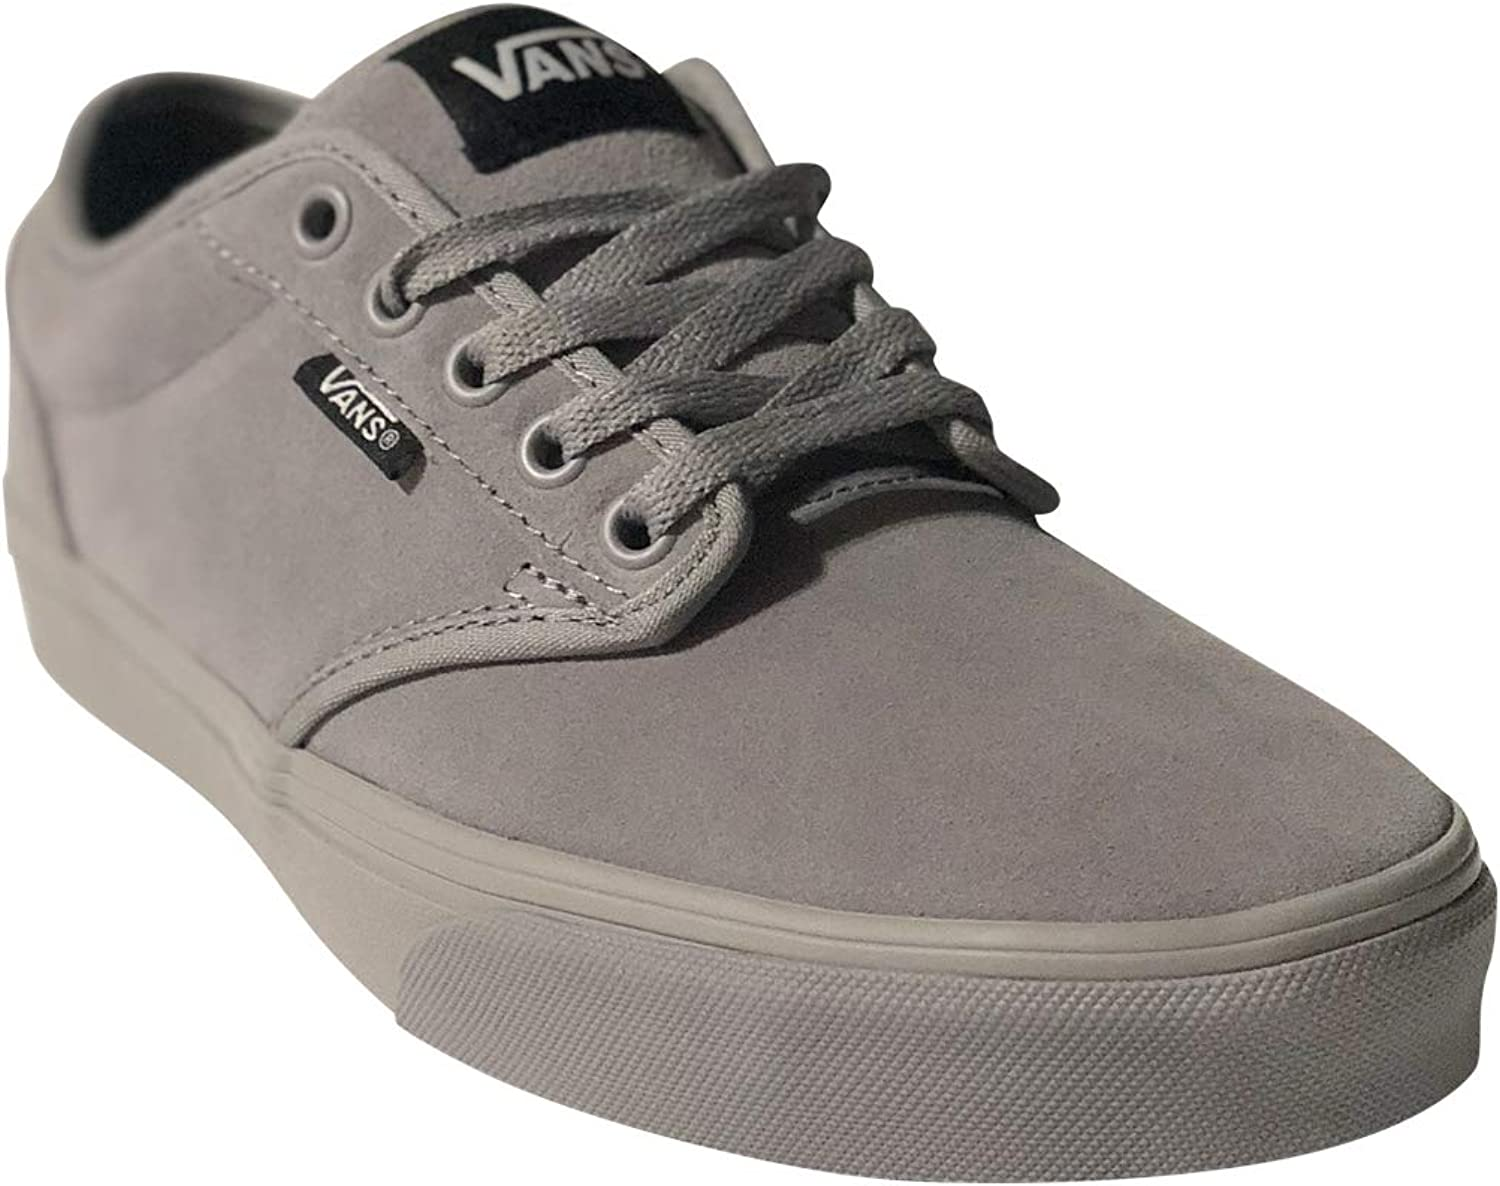 Vans Atwood, Women's LowTop Trainers